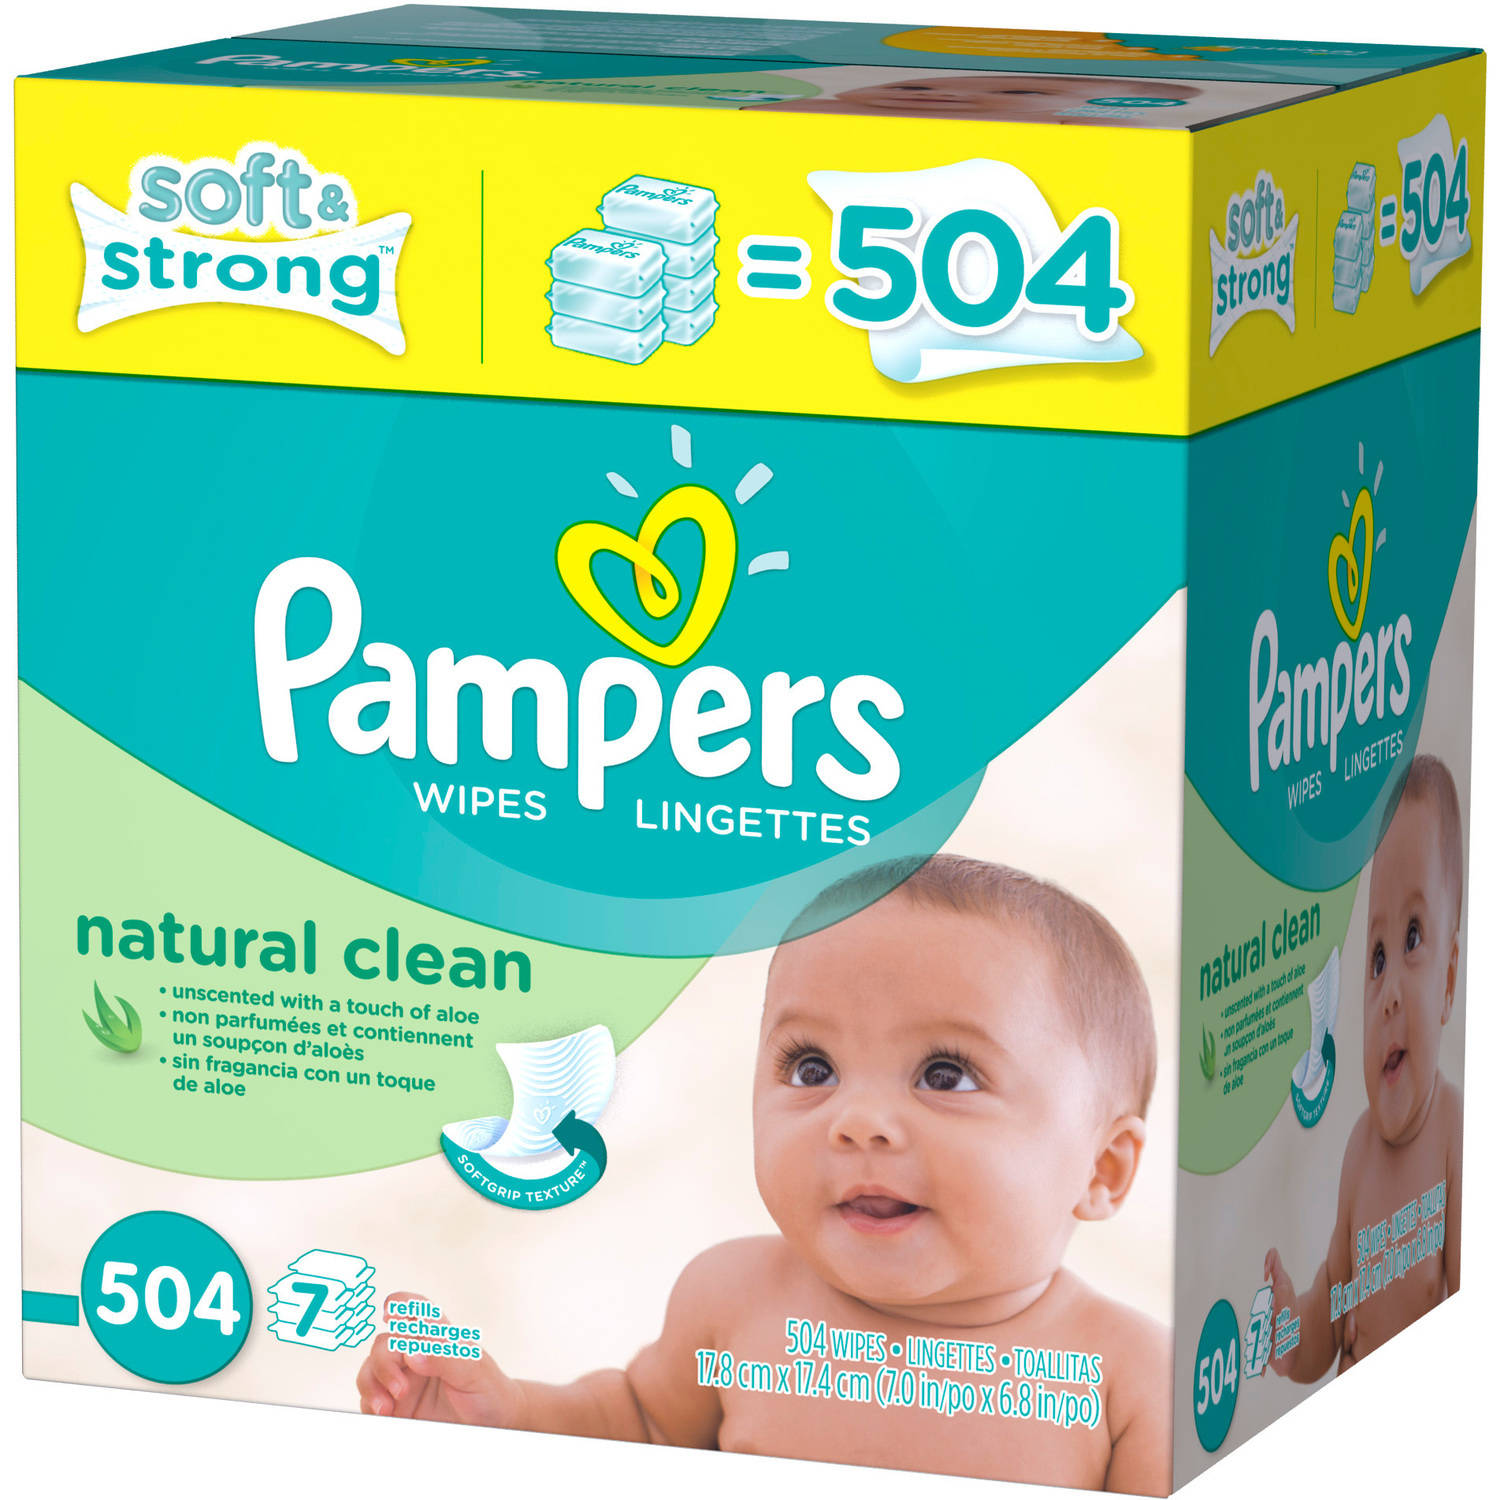 Pampers Natural Clean Baby Wipes Refills, 504 sheets